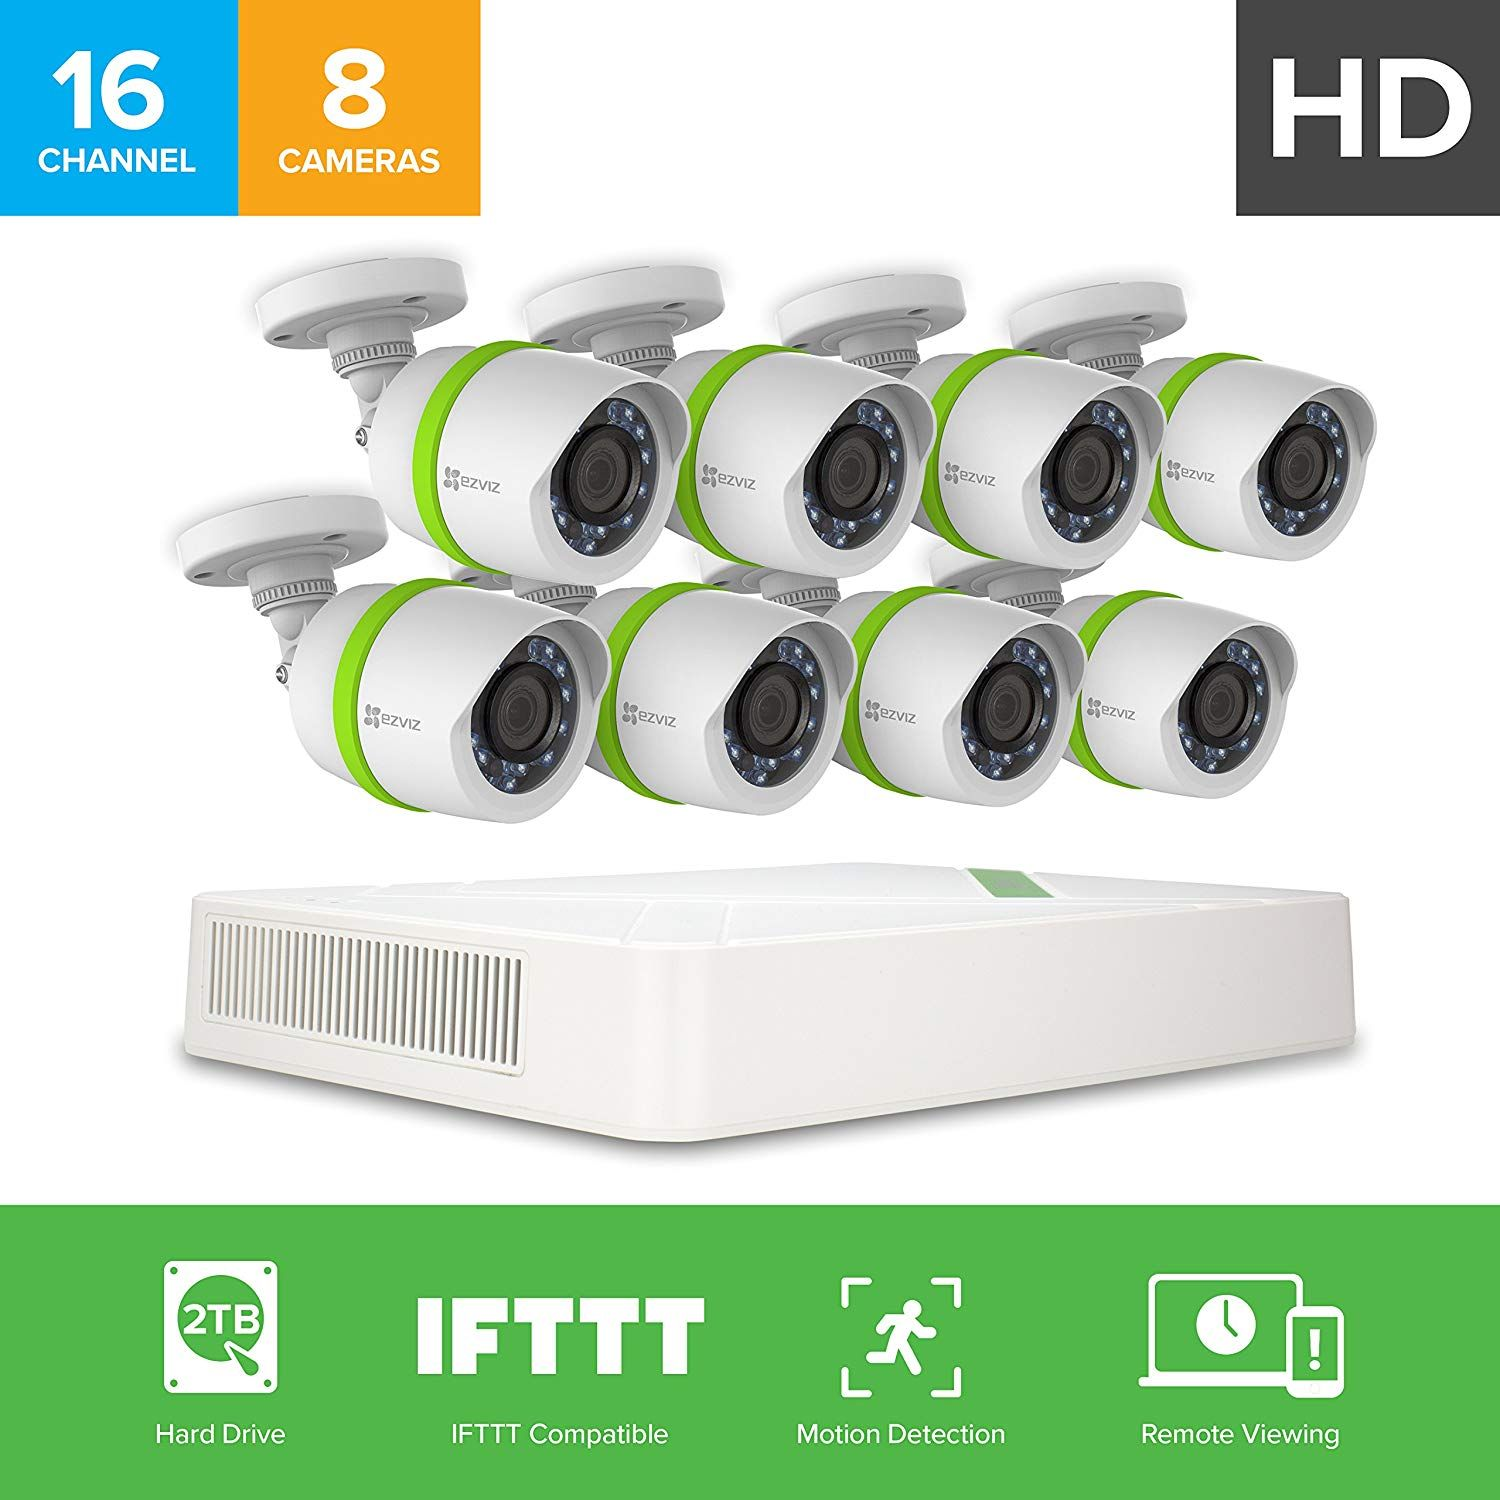 Welcome To Best Cctv Camera System For Home Office And Everywhere Cctv Camera For Ho Camera Surveillance System Security Cameras For Home Surveillance System